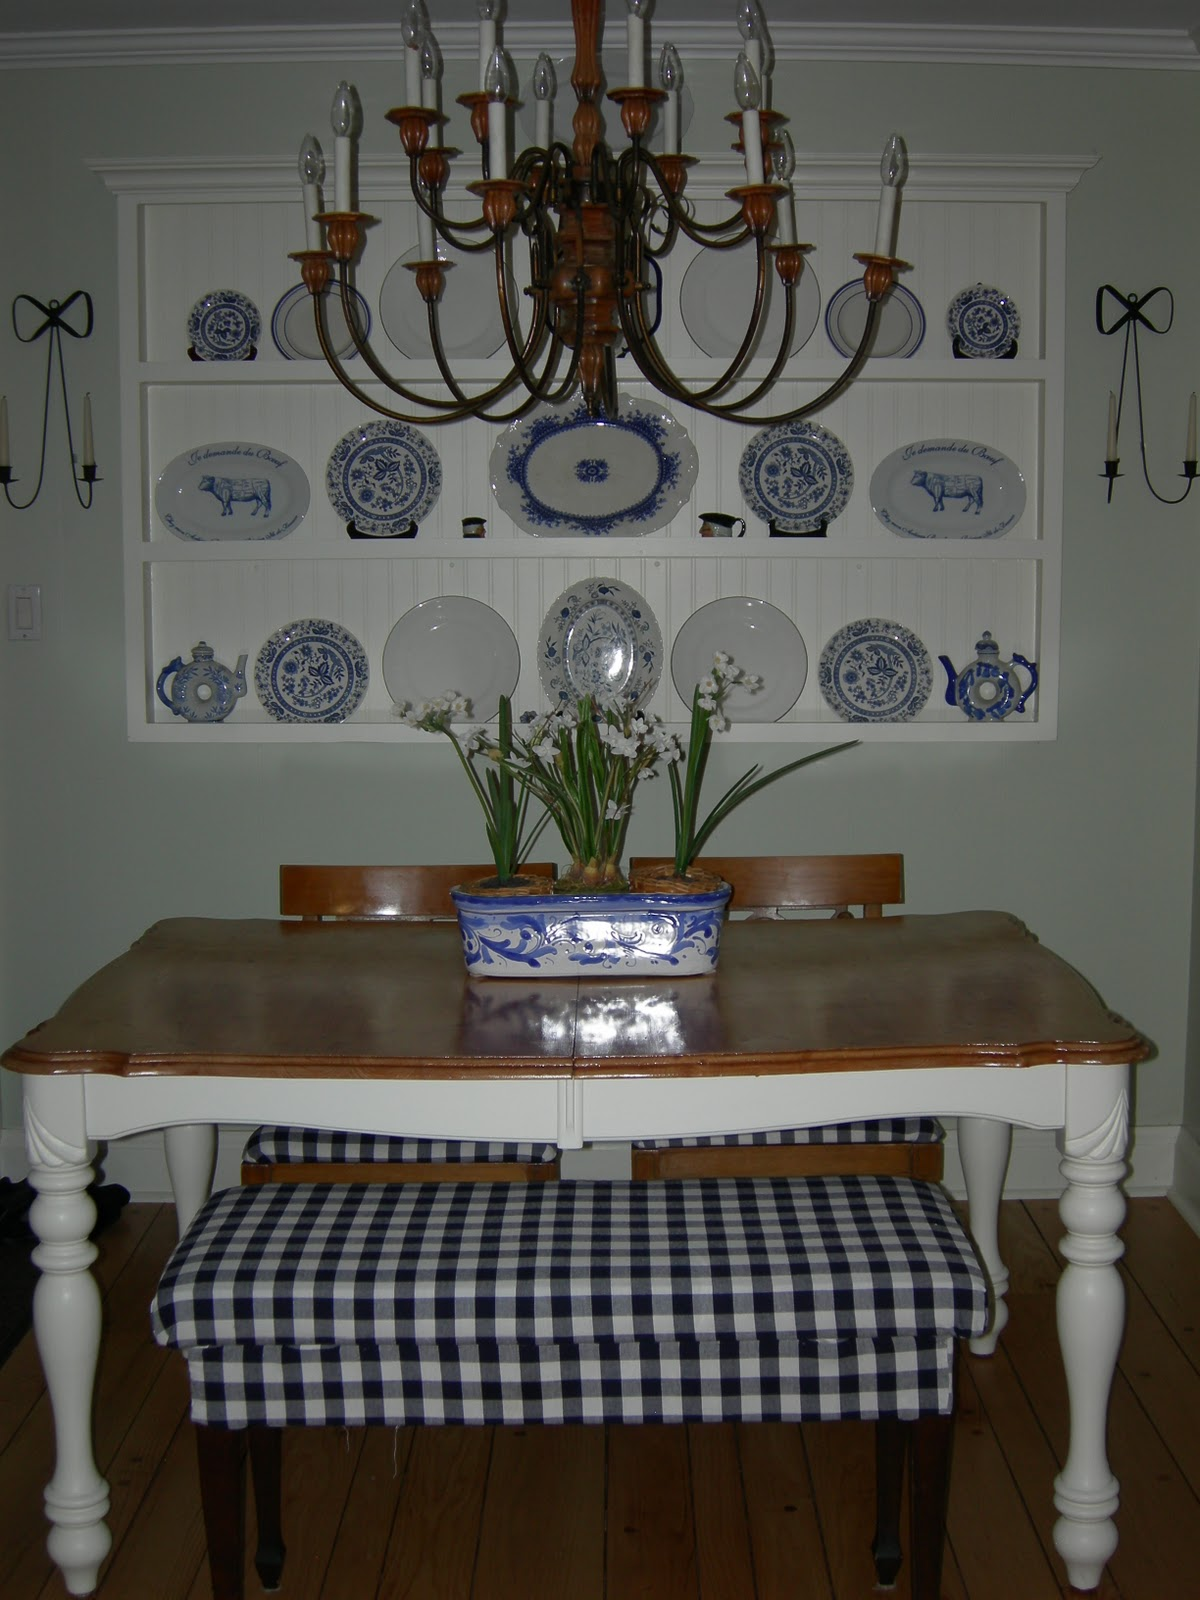 French Country Inspired Wall Plate Rack - How to Display Plates on the Wall & The Summer House: French Country Inspired Wall Plate Rack - How to ...